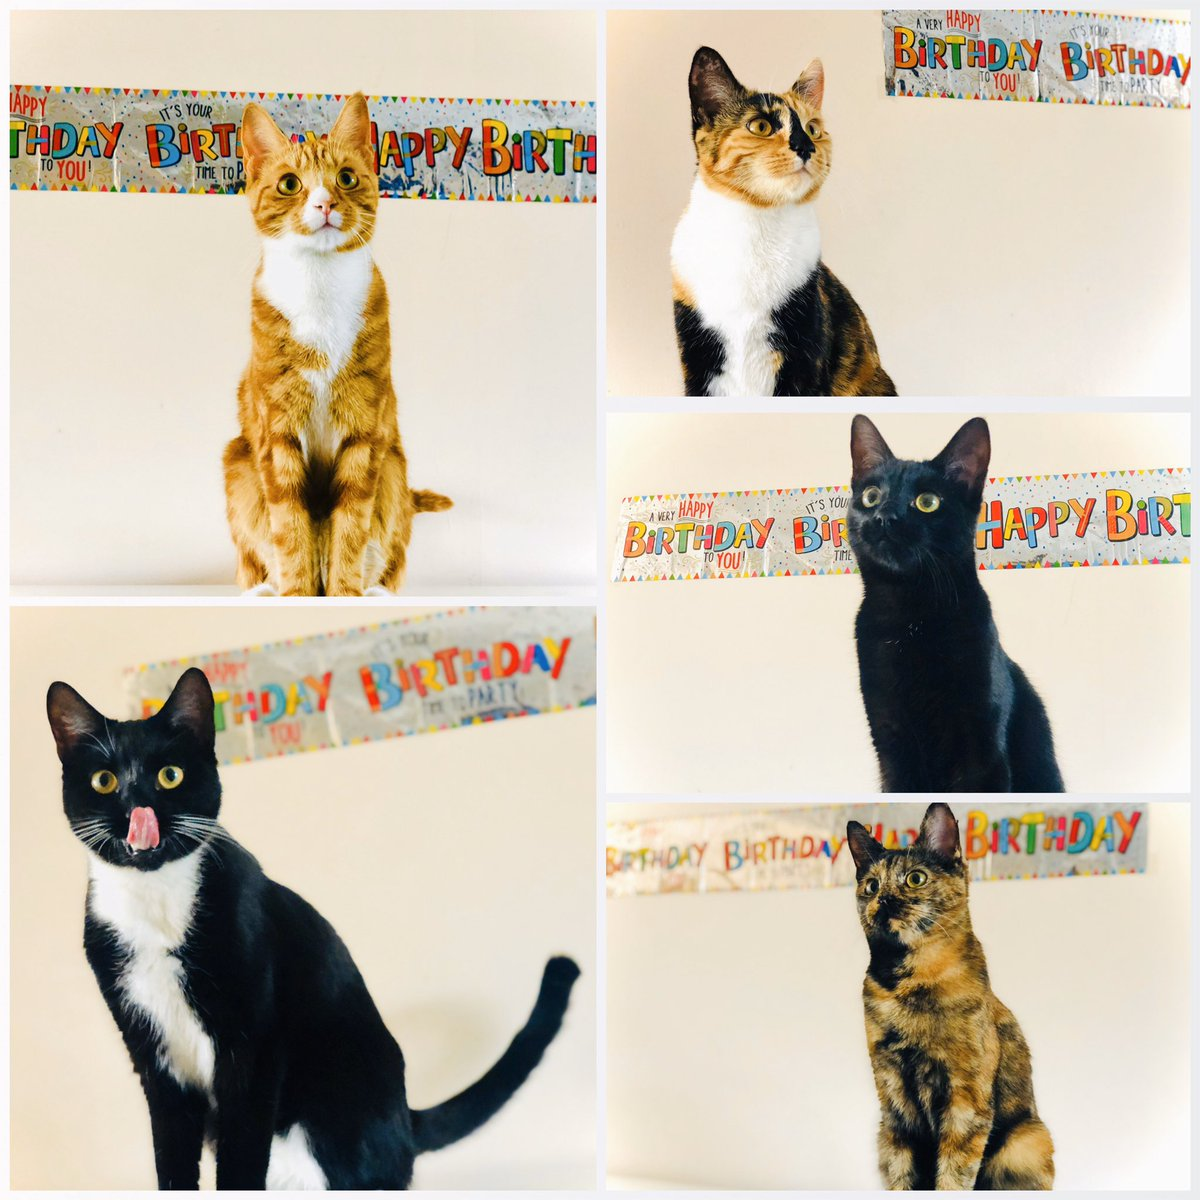 Da cutest birthday collage evuuur! 😍 We had a lil photo shoot on our 1st birthday yesterday and humum made us all a special cake each! 🎂🥳🎉🎈 . . . #CatsOfTwitter #CatsOfInstagram #Kitten #CuteCats #CuteAnimals #TeamFloof #LoveYourPets #FriYay @RSPCA_official @CatsProtection